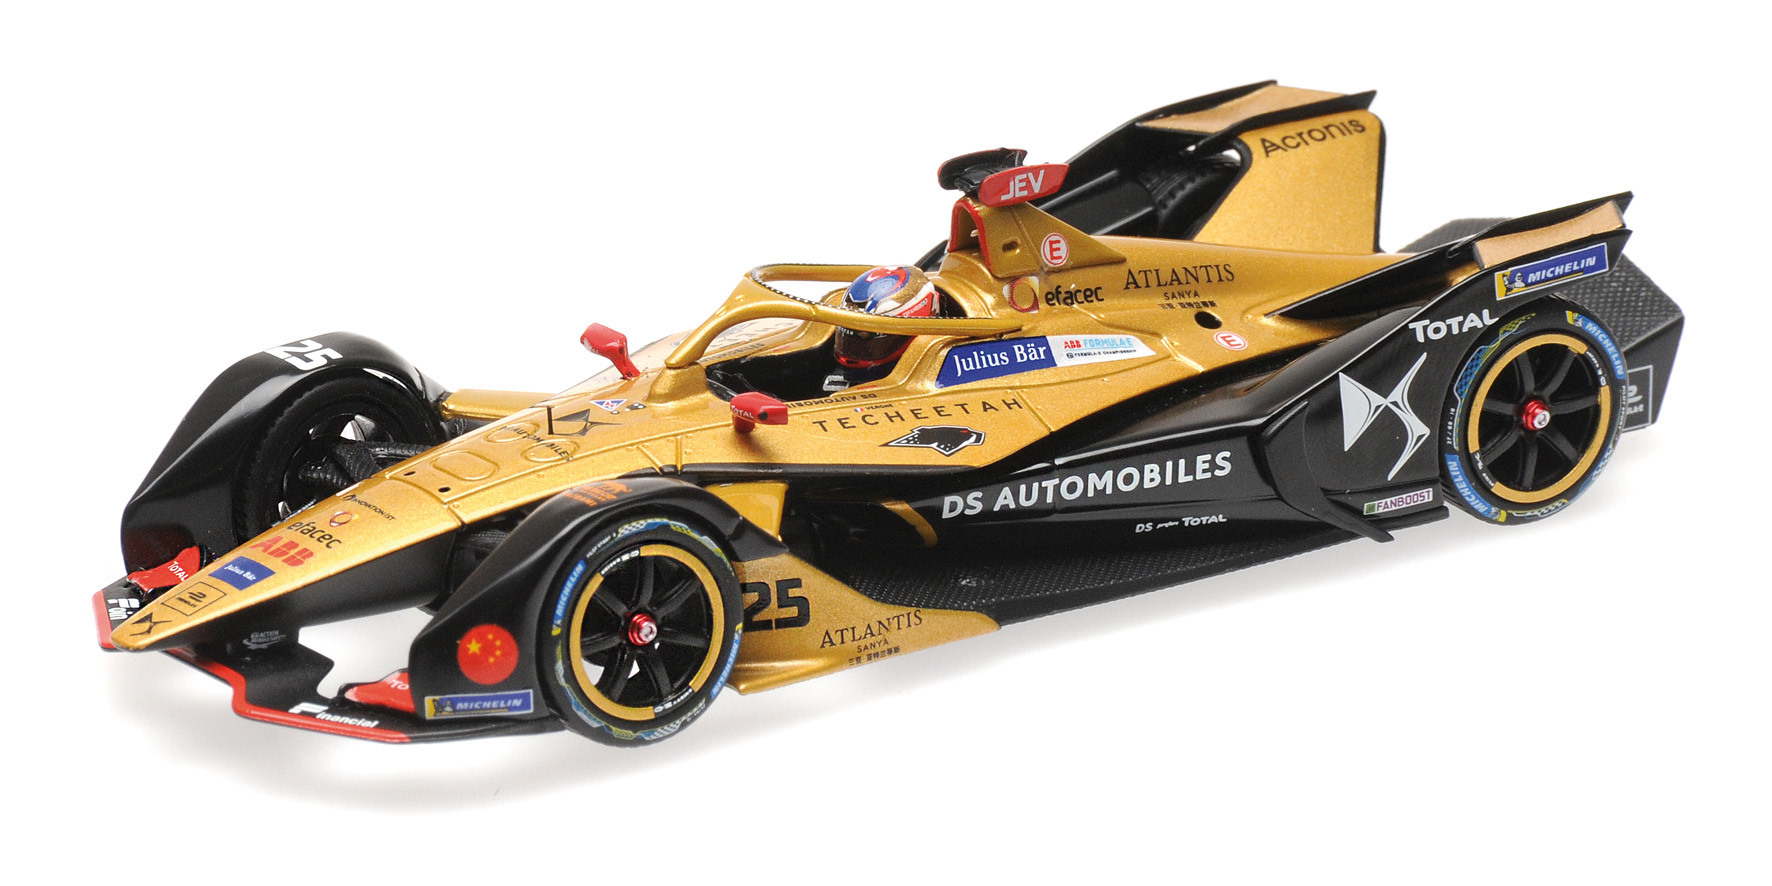 Formula E Season 5 DS Techeetah Formula E Team 2018 J.E. Vergne